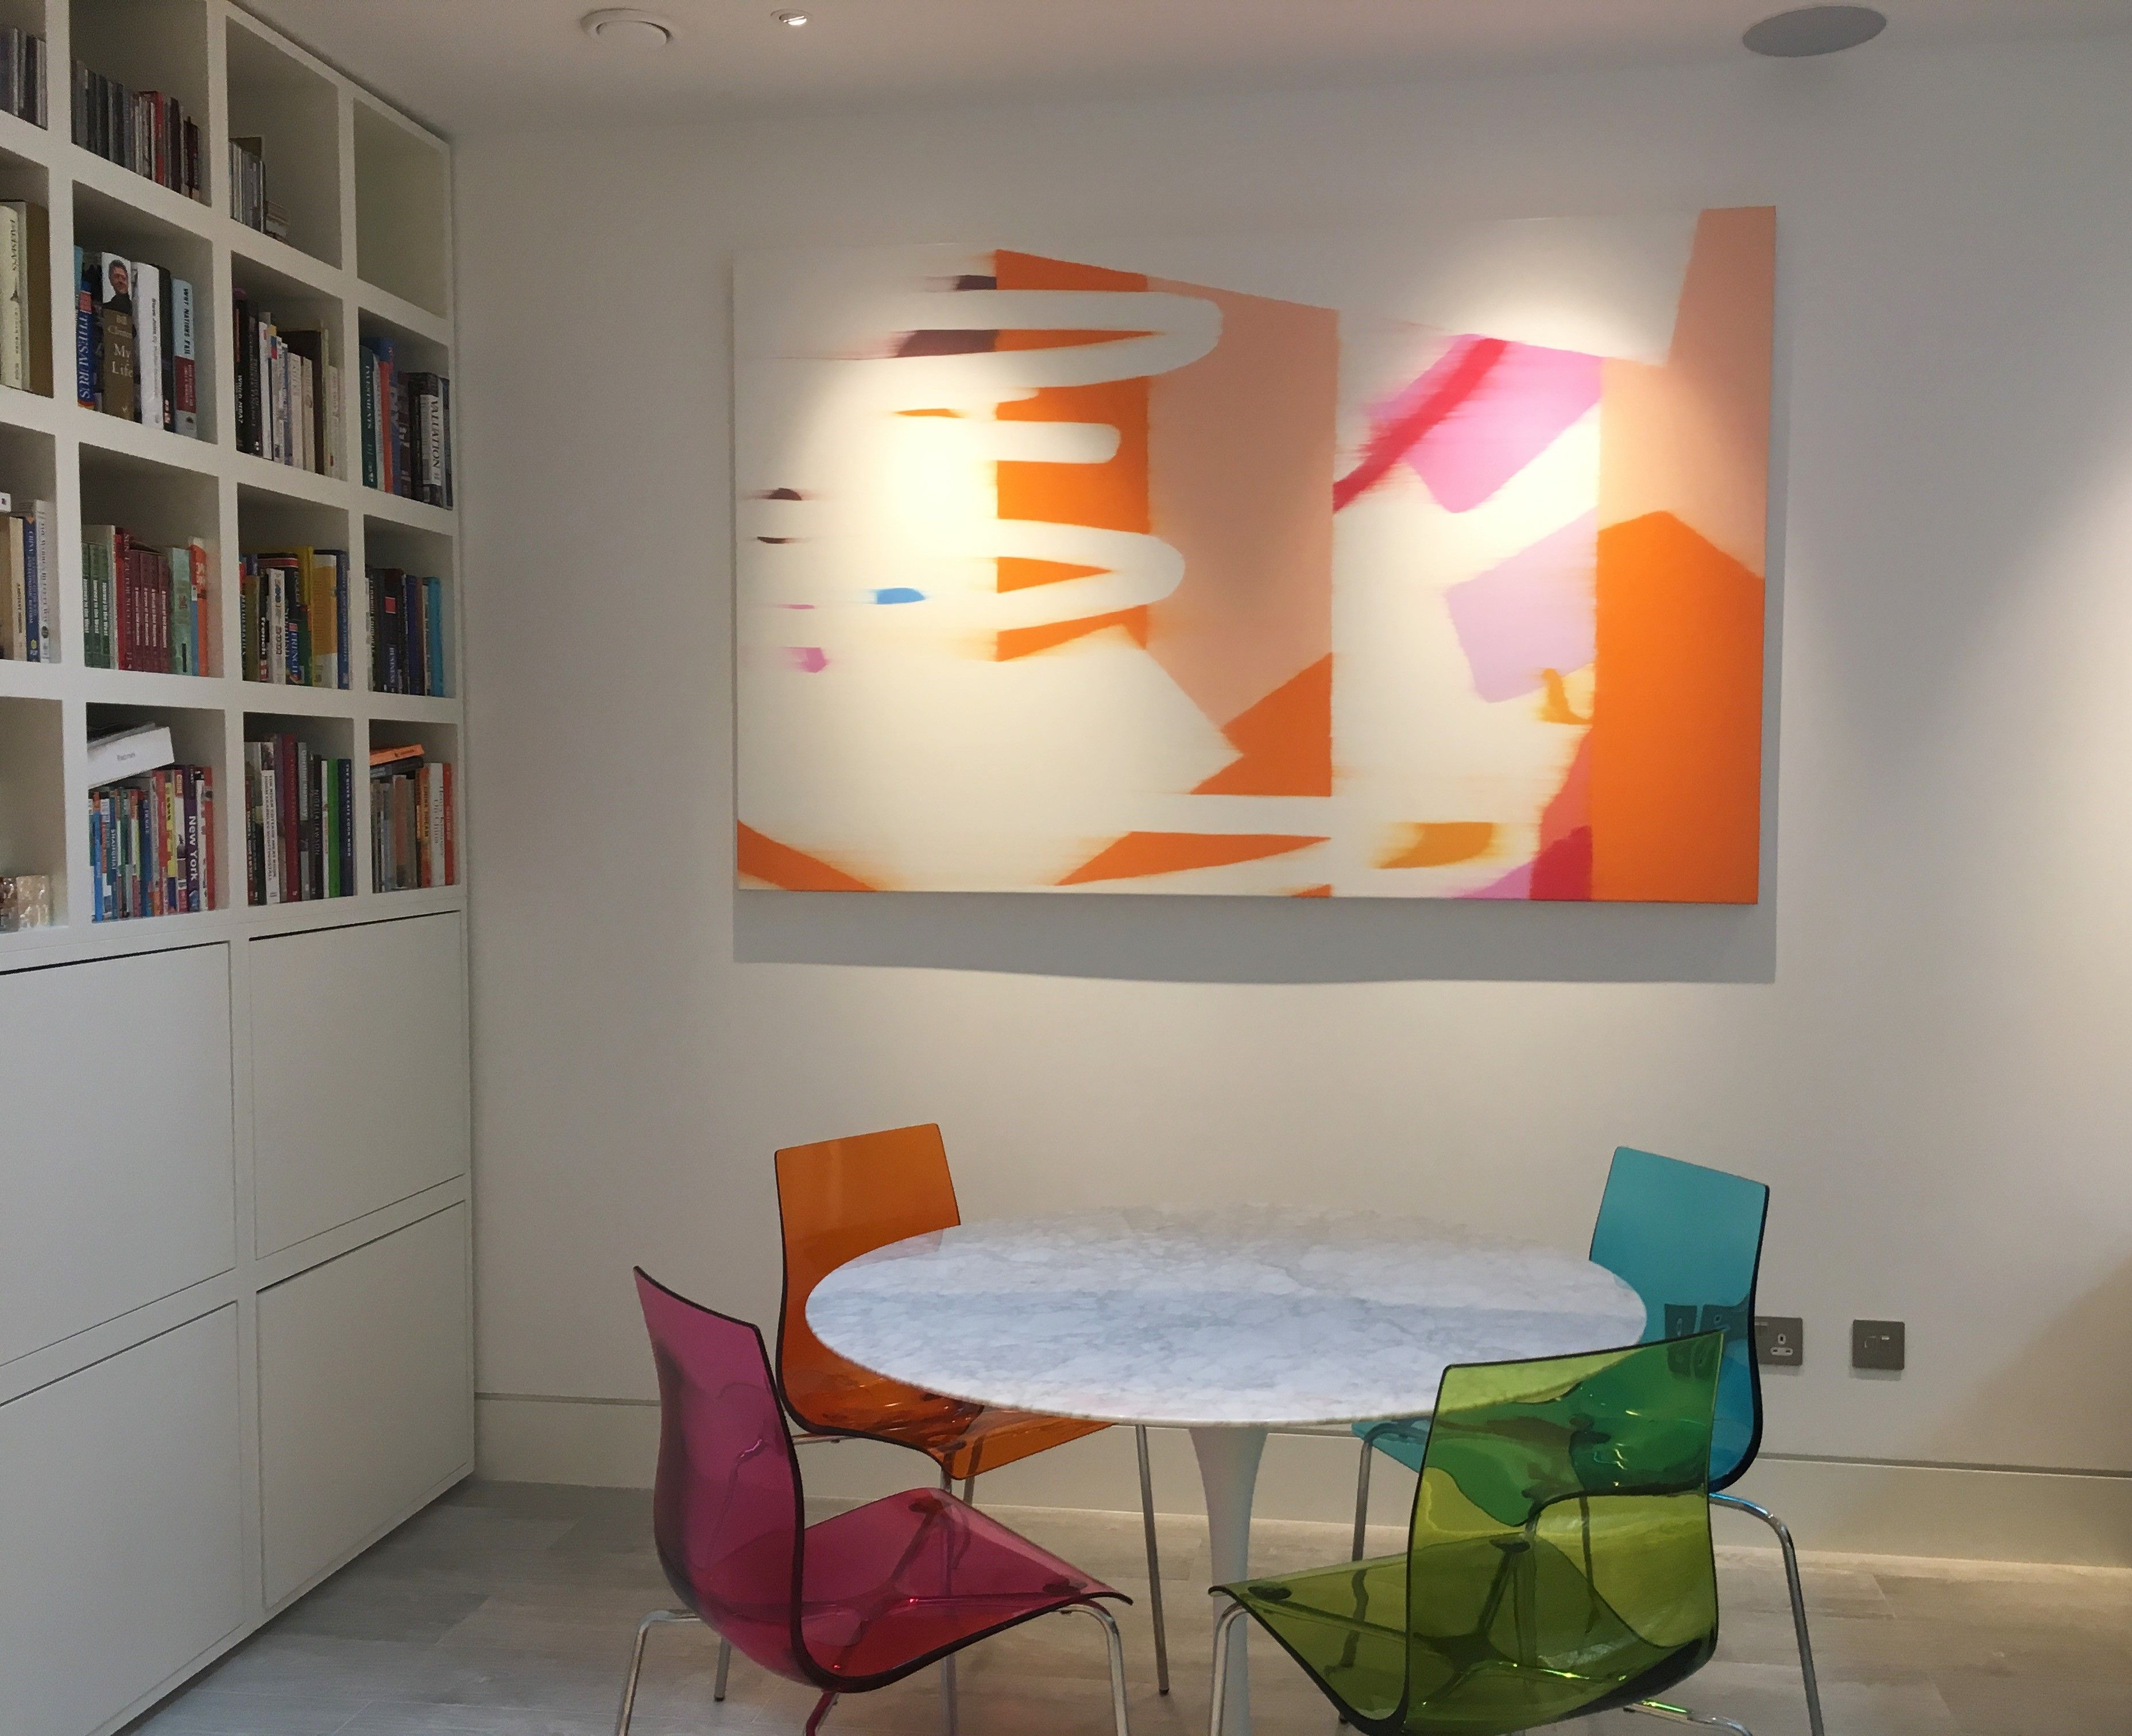 gallery work home. Work Of Bernd Mechler From Lisa Norris Gallery In A London Home - Art Interiors